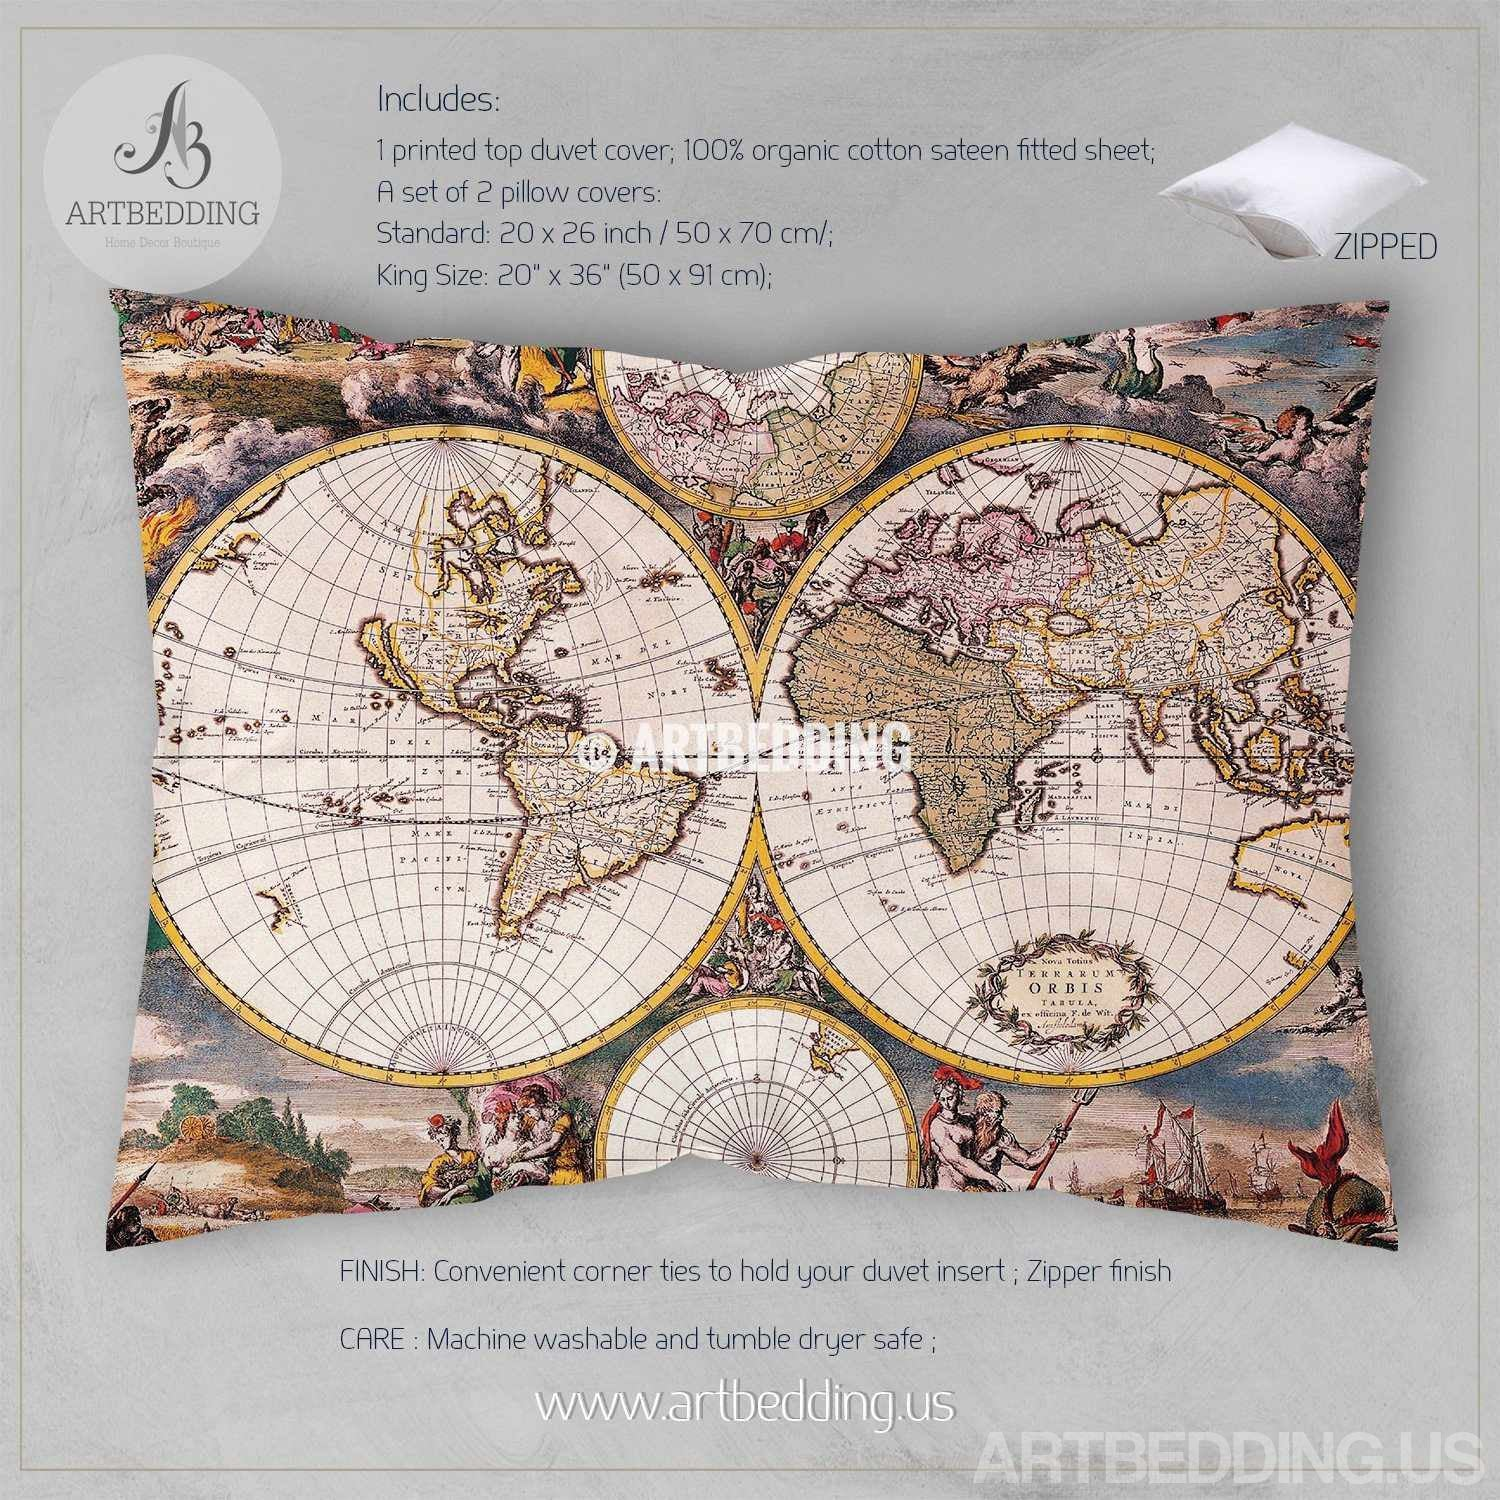 Old world map bedding vintage 18th century hemisphere illustration vintage map bedding vintage old map duvet cover antique map queen king old world gumiabroncs Choice Image